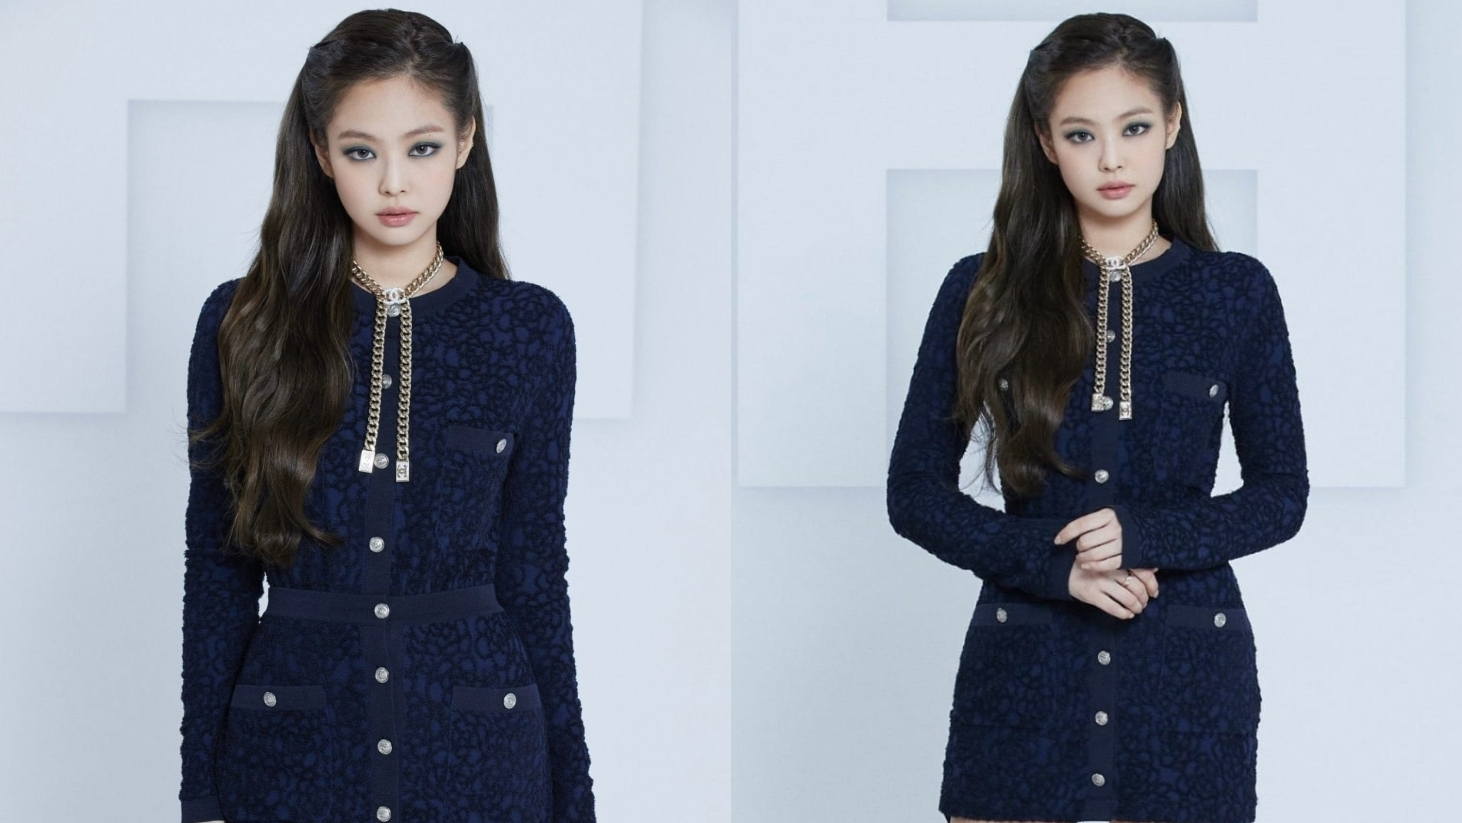 BLACKPINK's Jennie Elegant Style Wears a Chanel Collection Reap Admiration